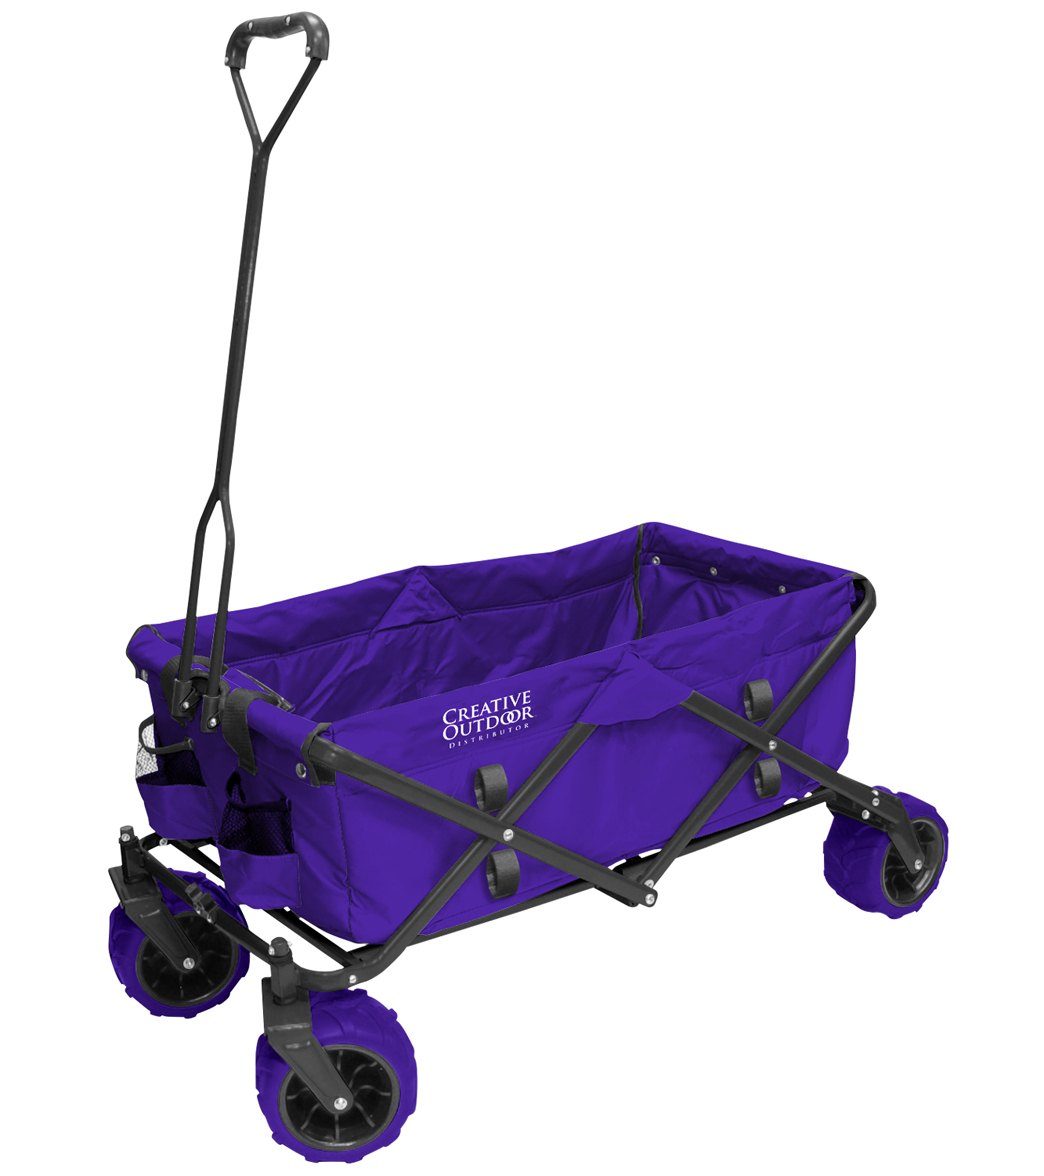 Creative Outdoor All Terrain Big Wheel Universal Cart at SwimOutlet.com -  Free Shipping cd4e1e64a